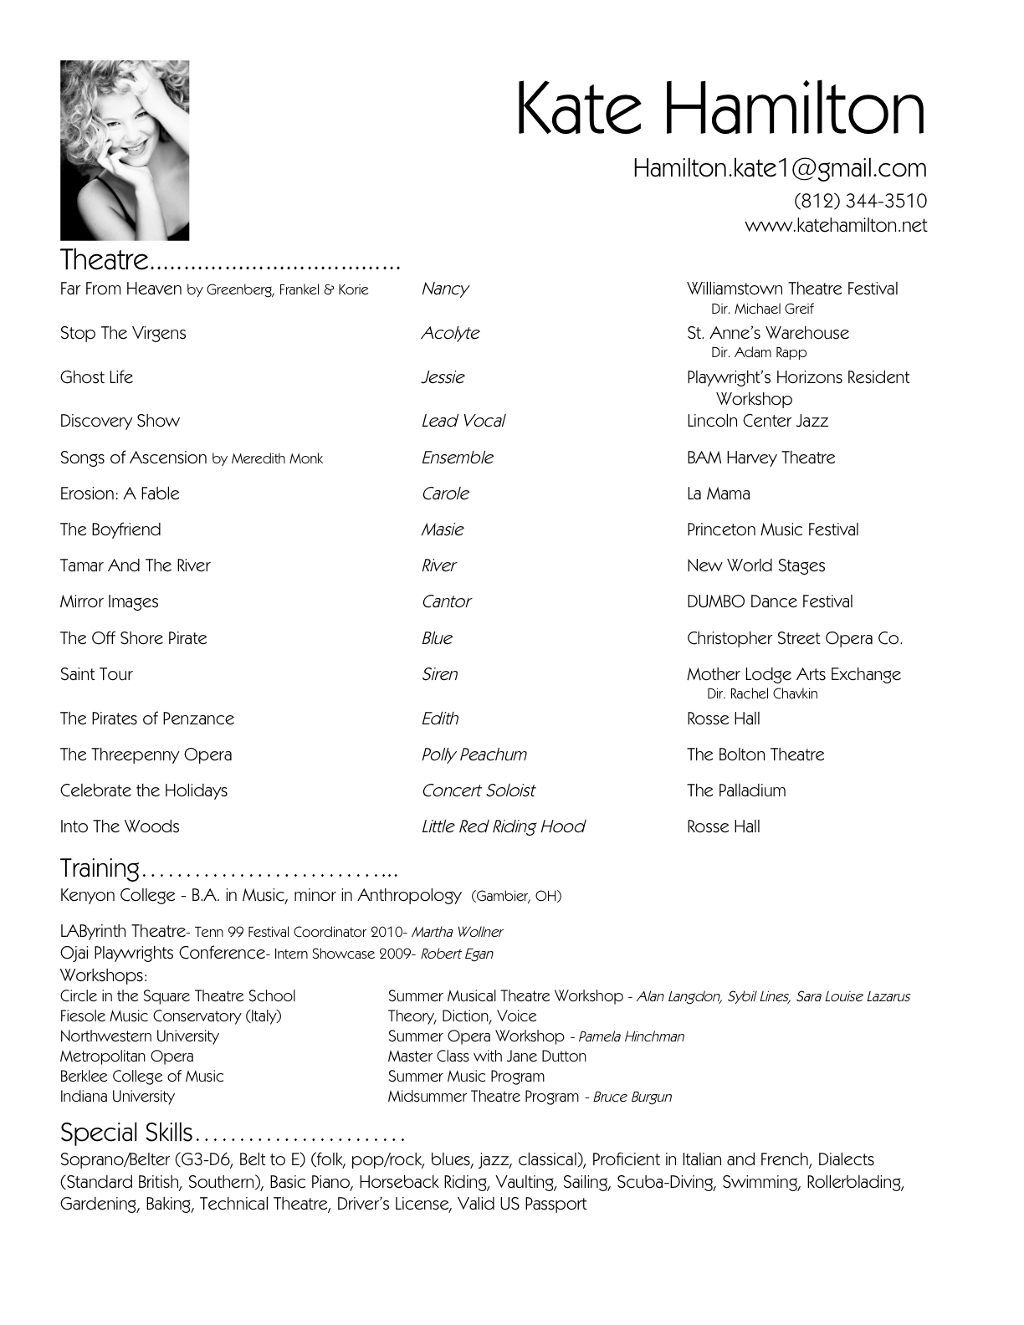 Example Of A Job Resume Resume Format For Advertising Agency  Httpwwwresumecareer